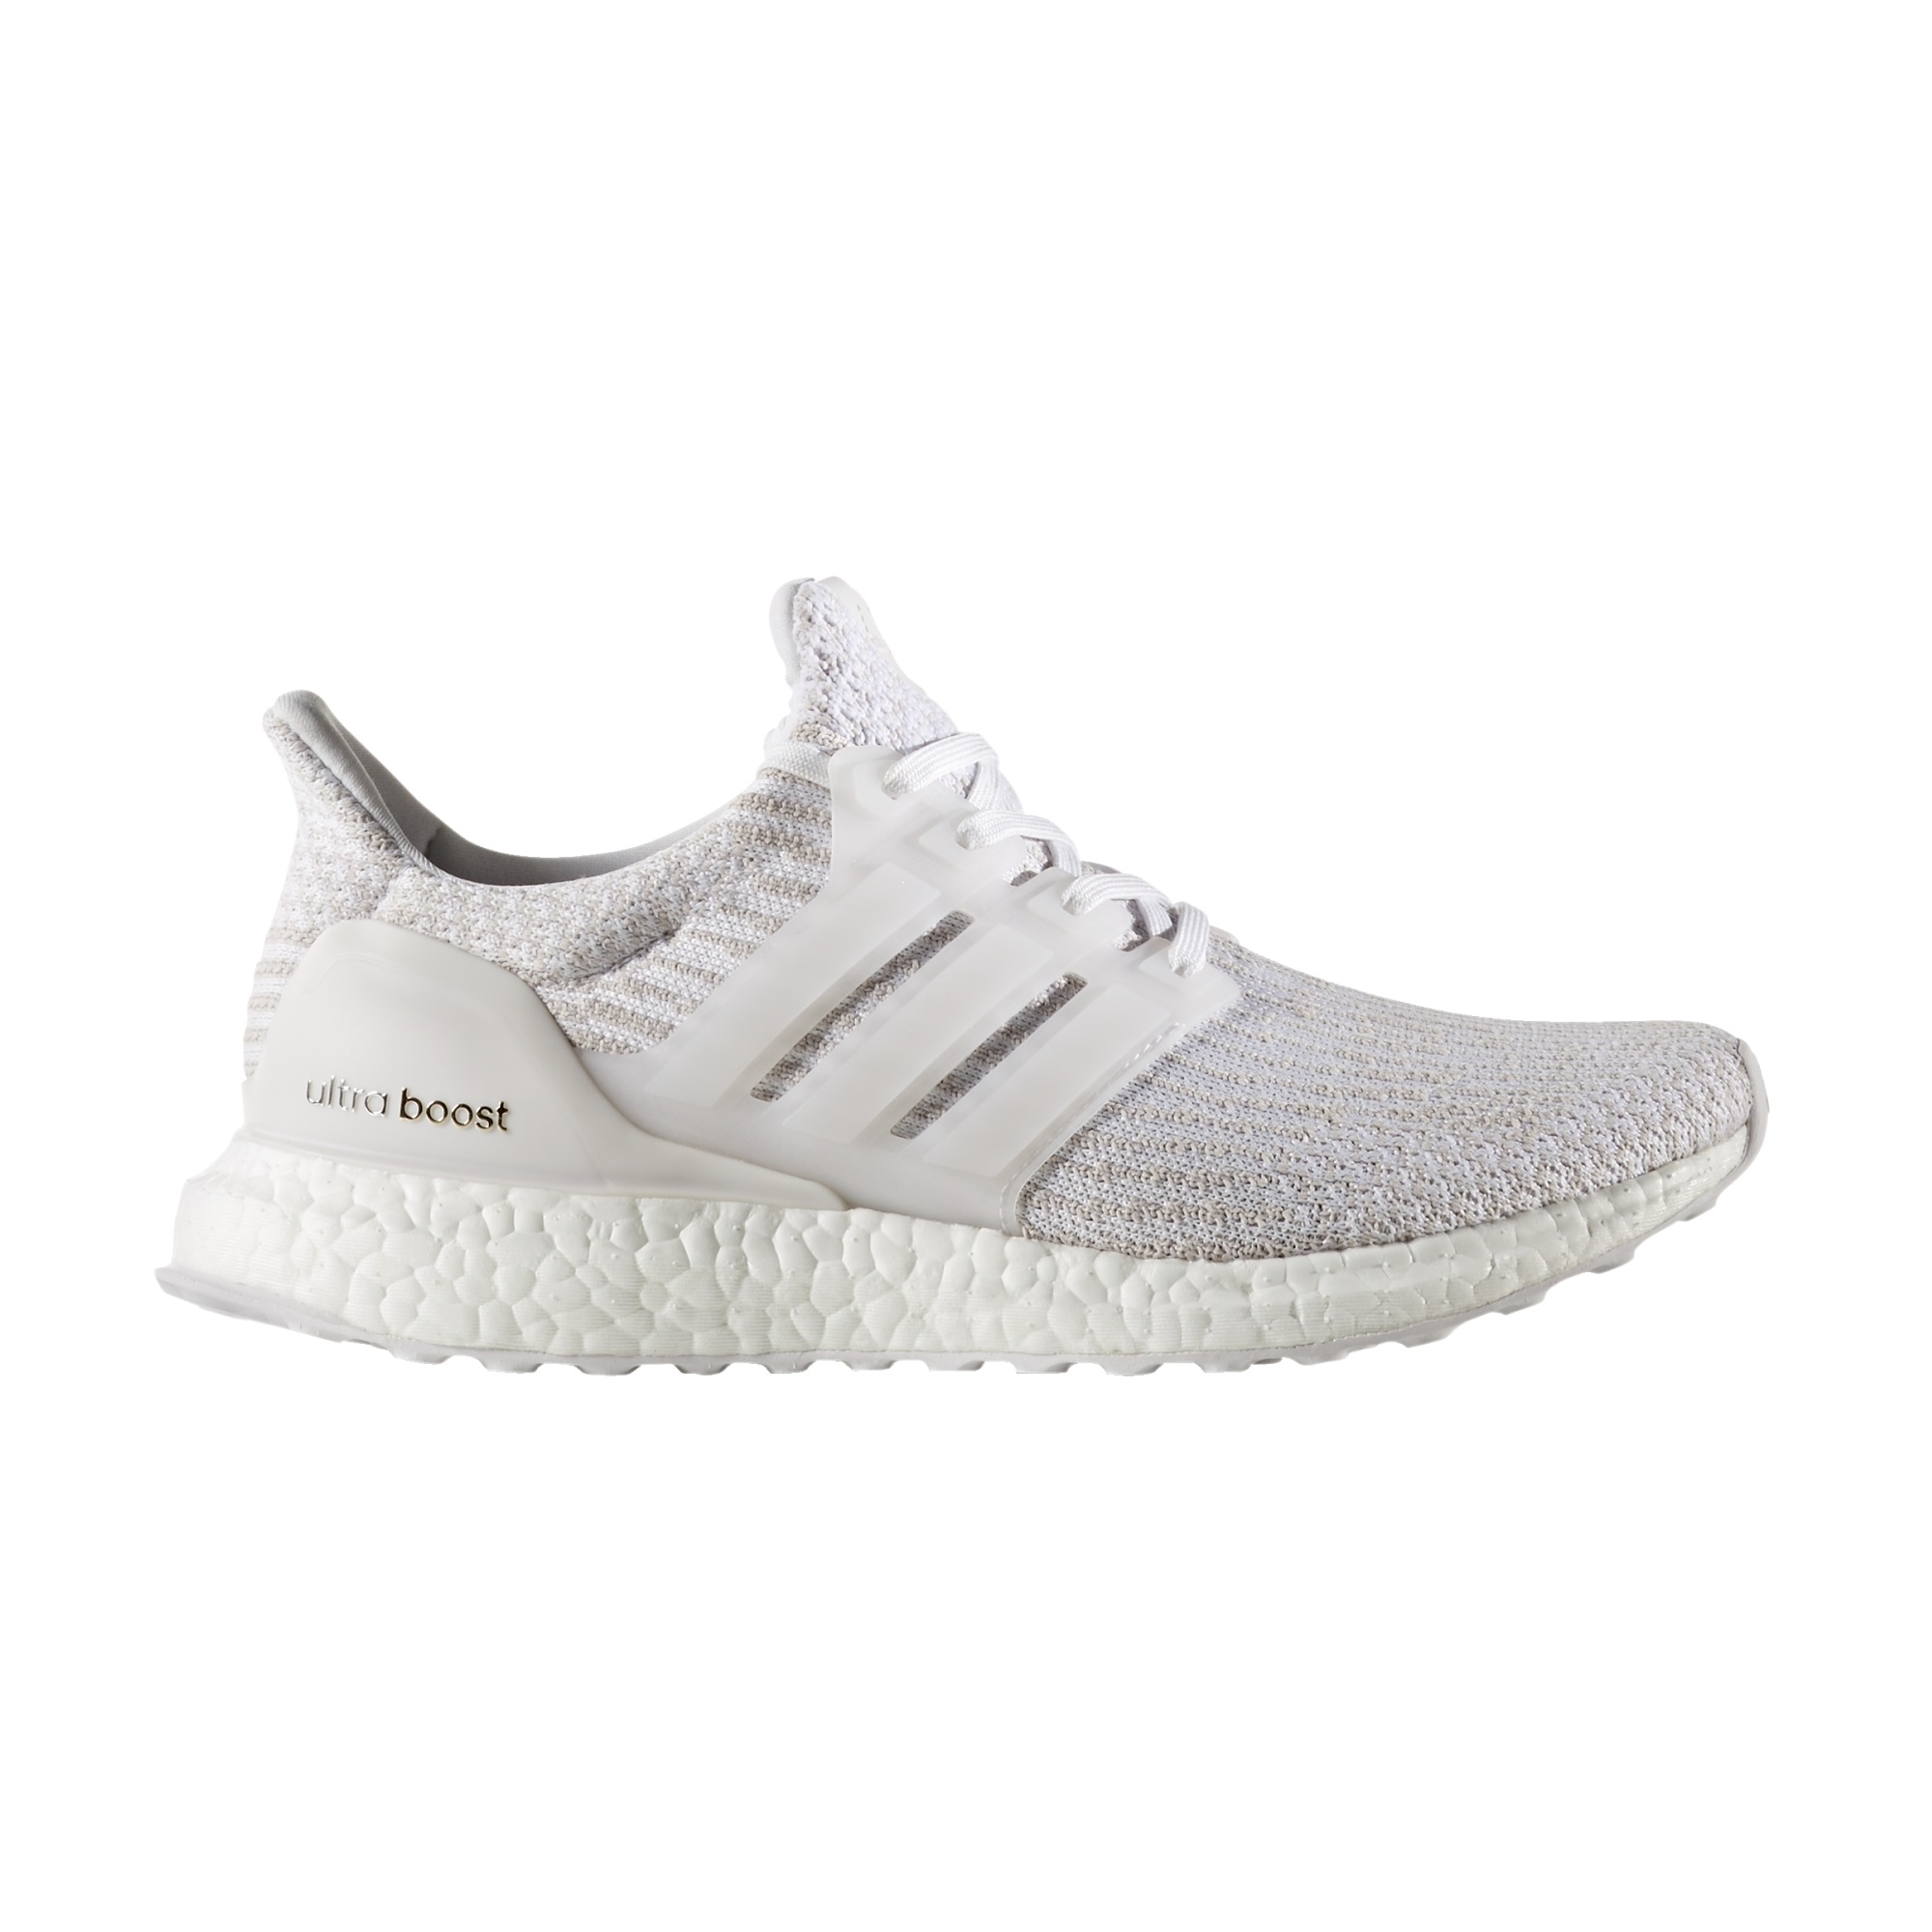 online store ee682 43f69 Adidas UltraBOOST Womens Running Shoes